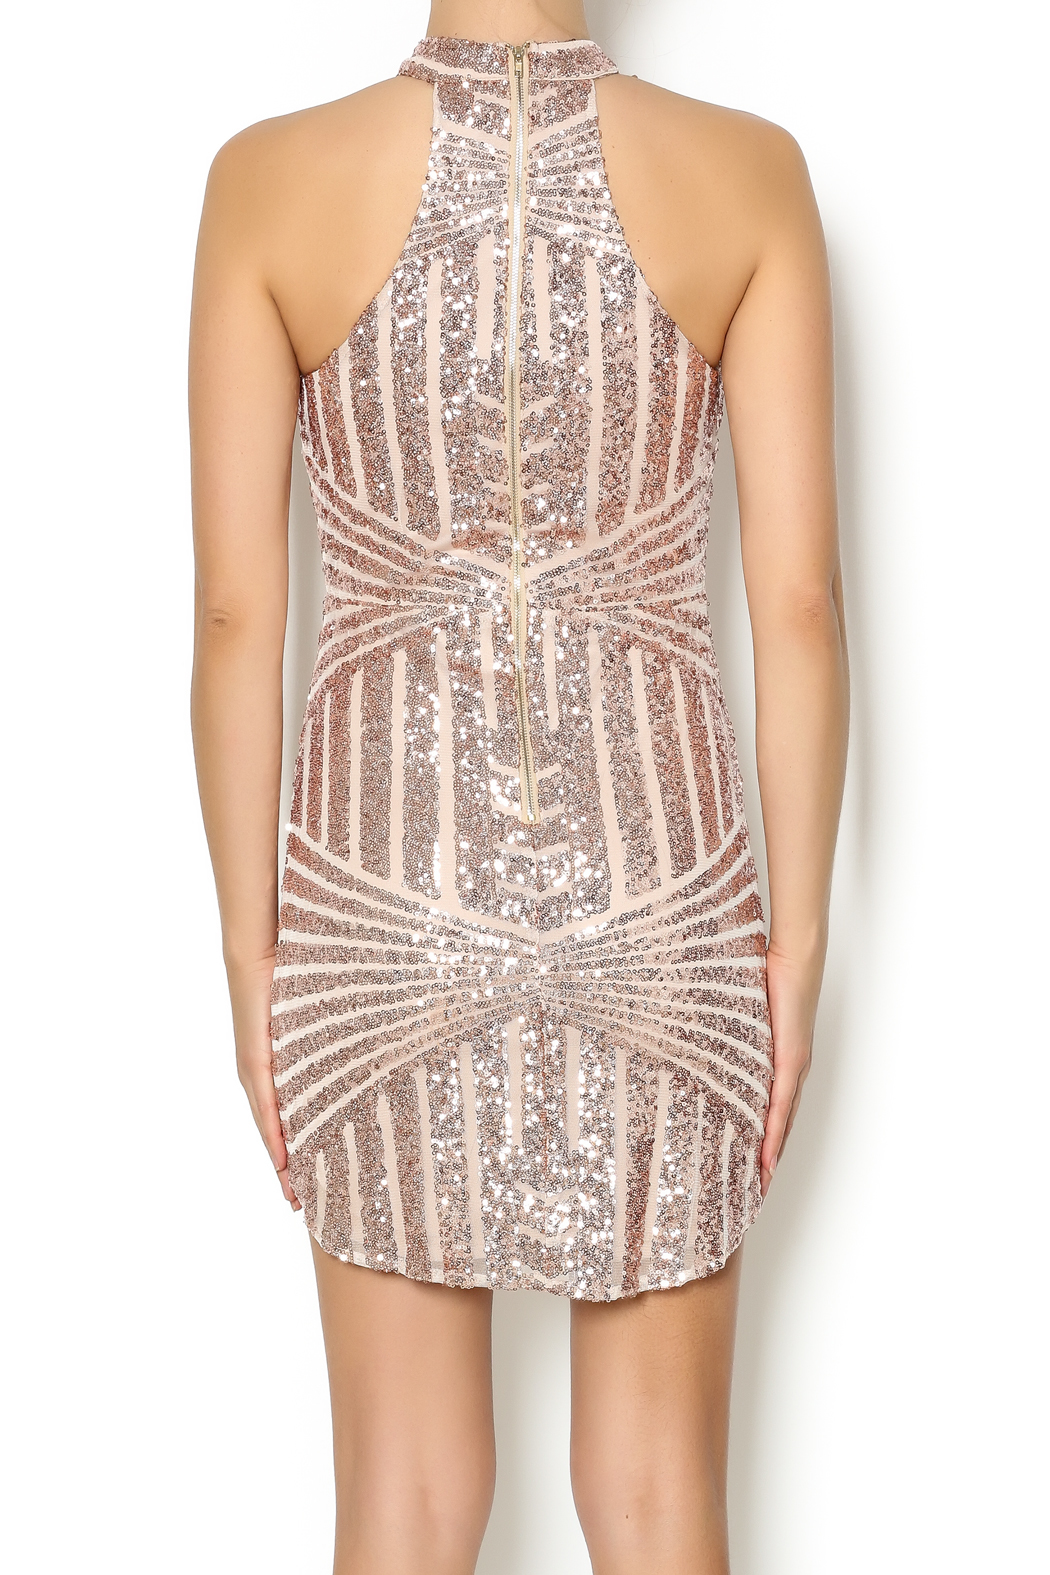 A Peach Bronze Sequin Dress From New York By Dor L Dor